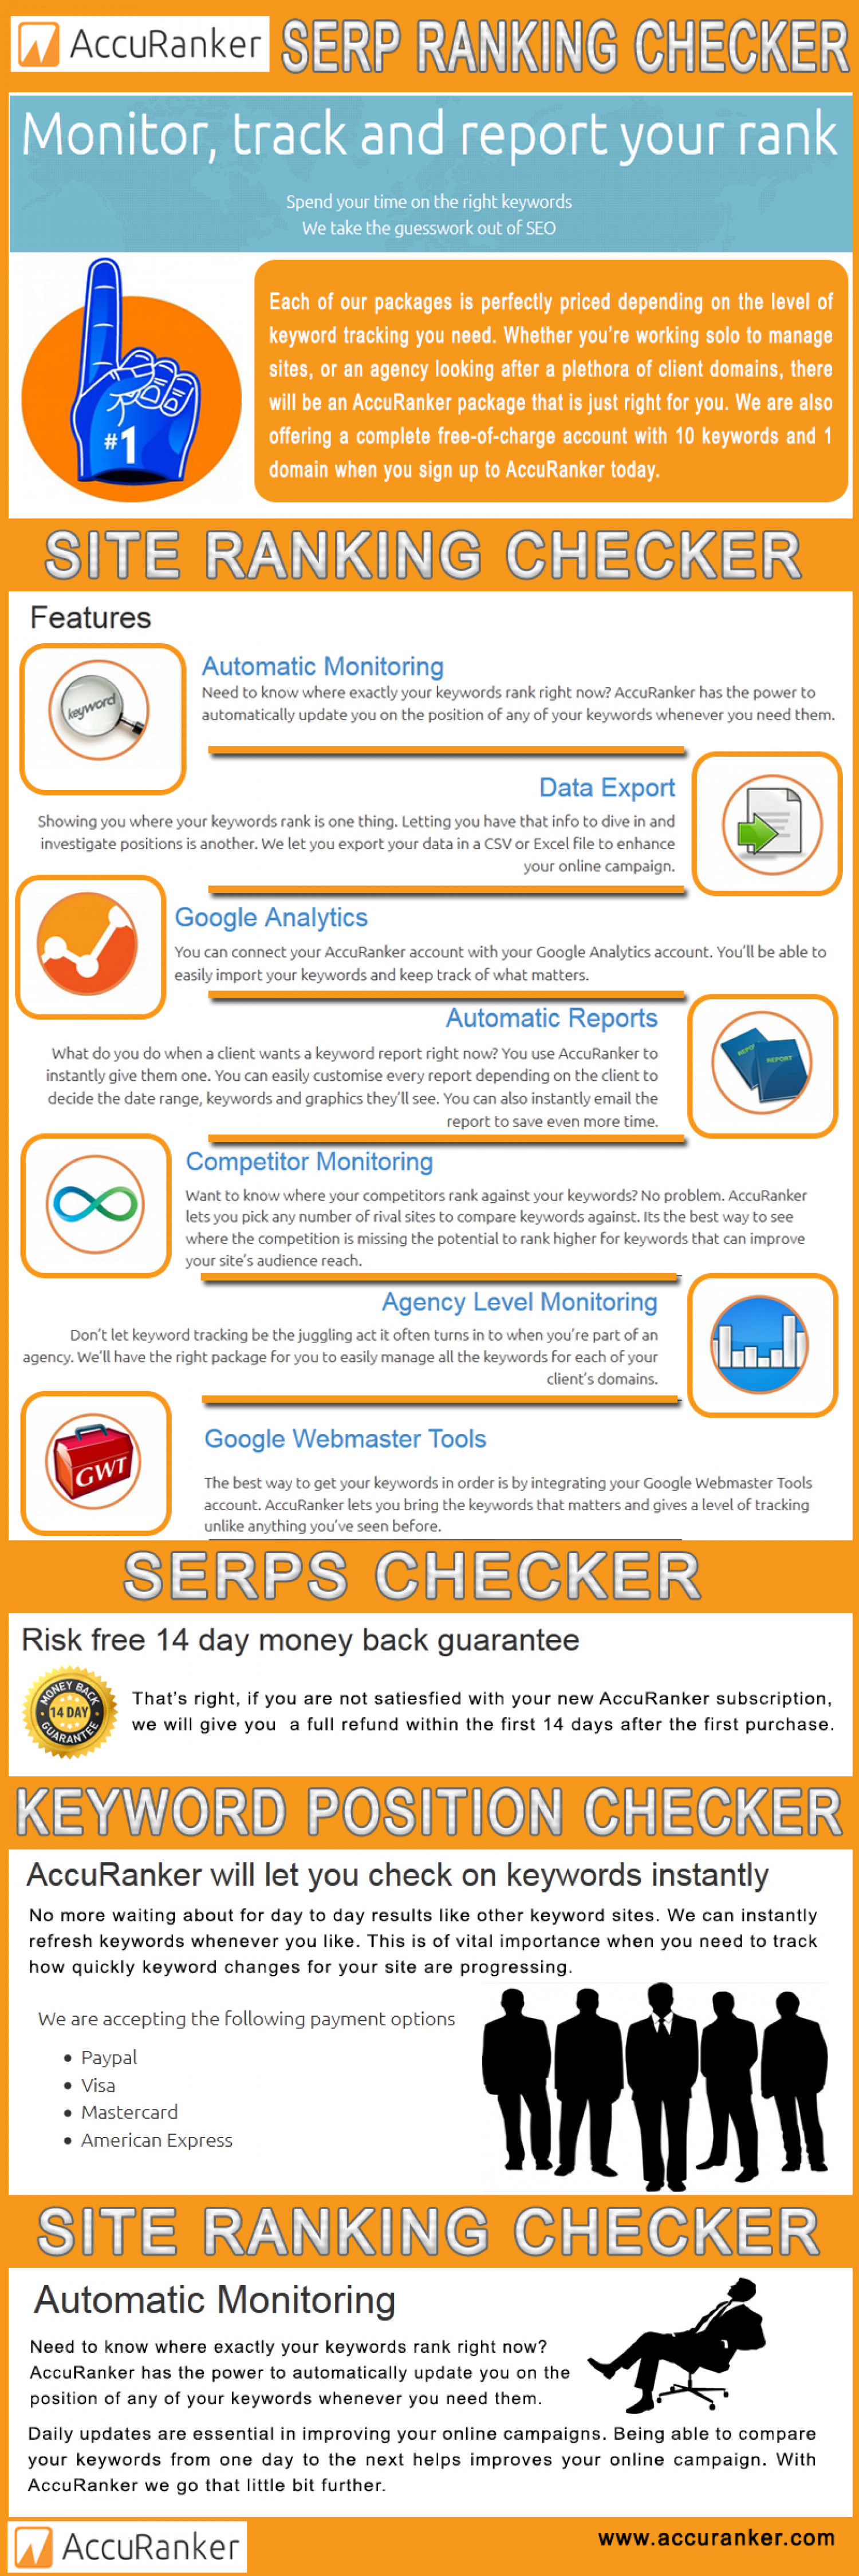 SERP Ranking Checker Infographic